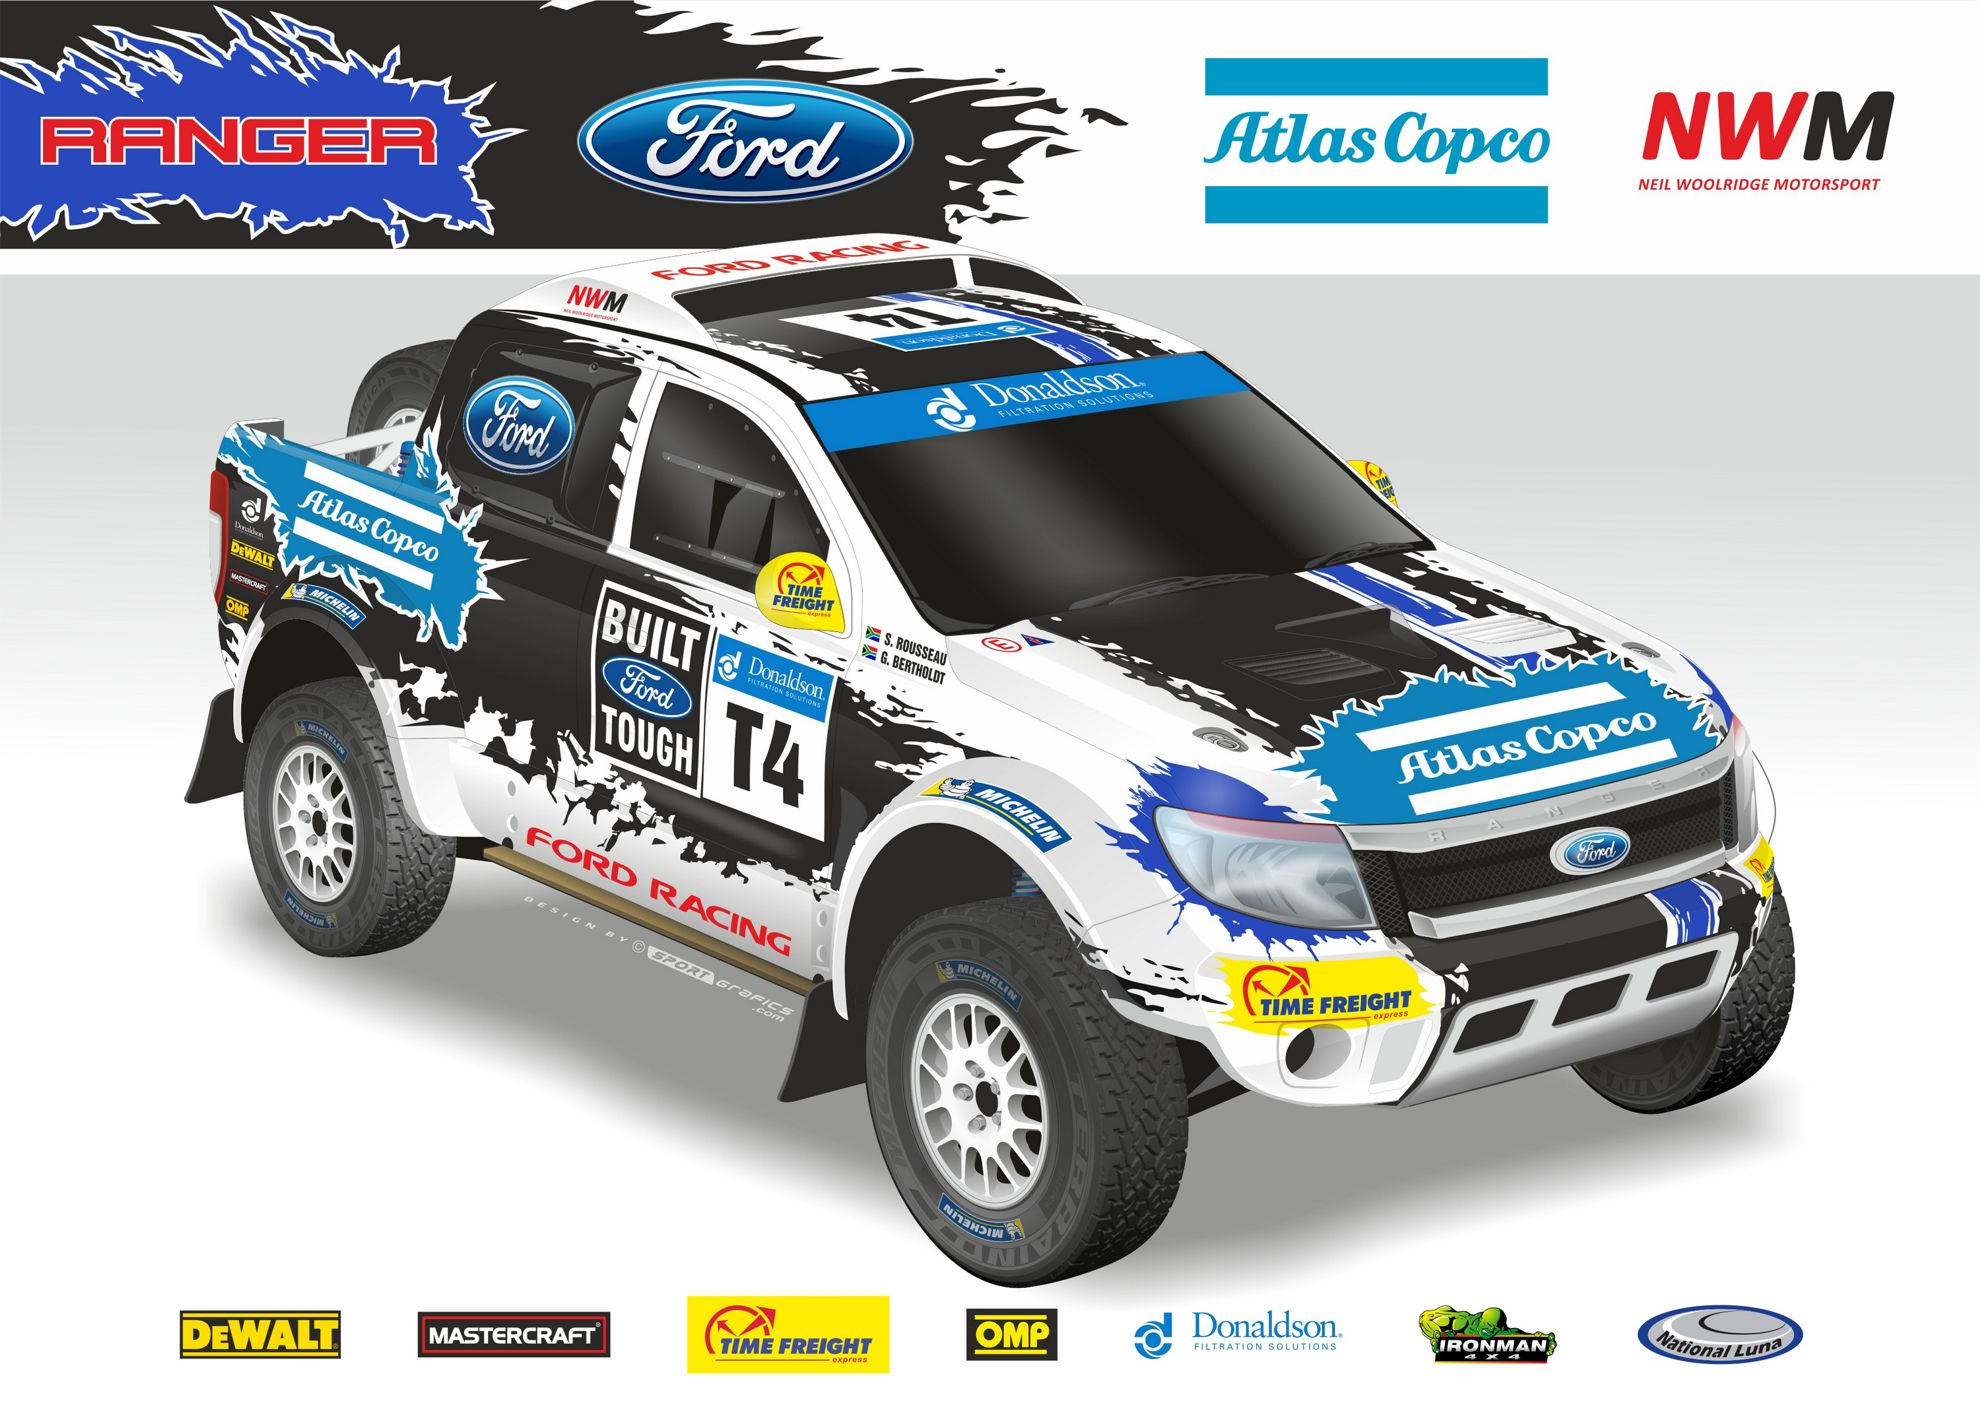 Ford Racing Tackles 2014 Donaldson Sa Cross Country